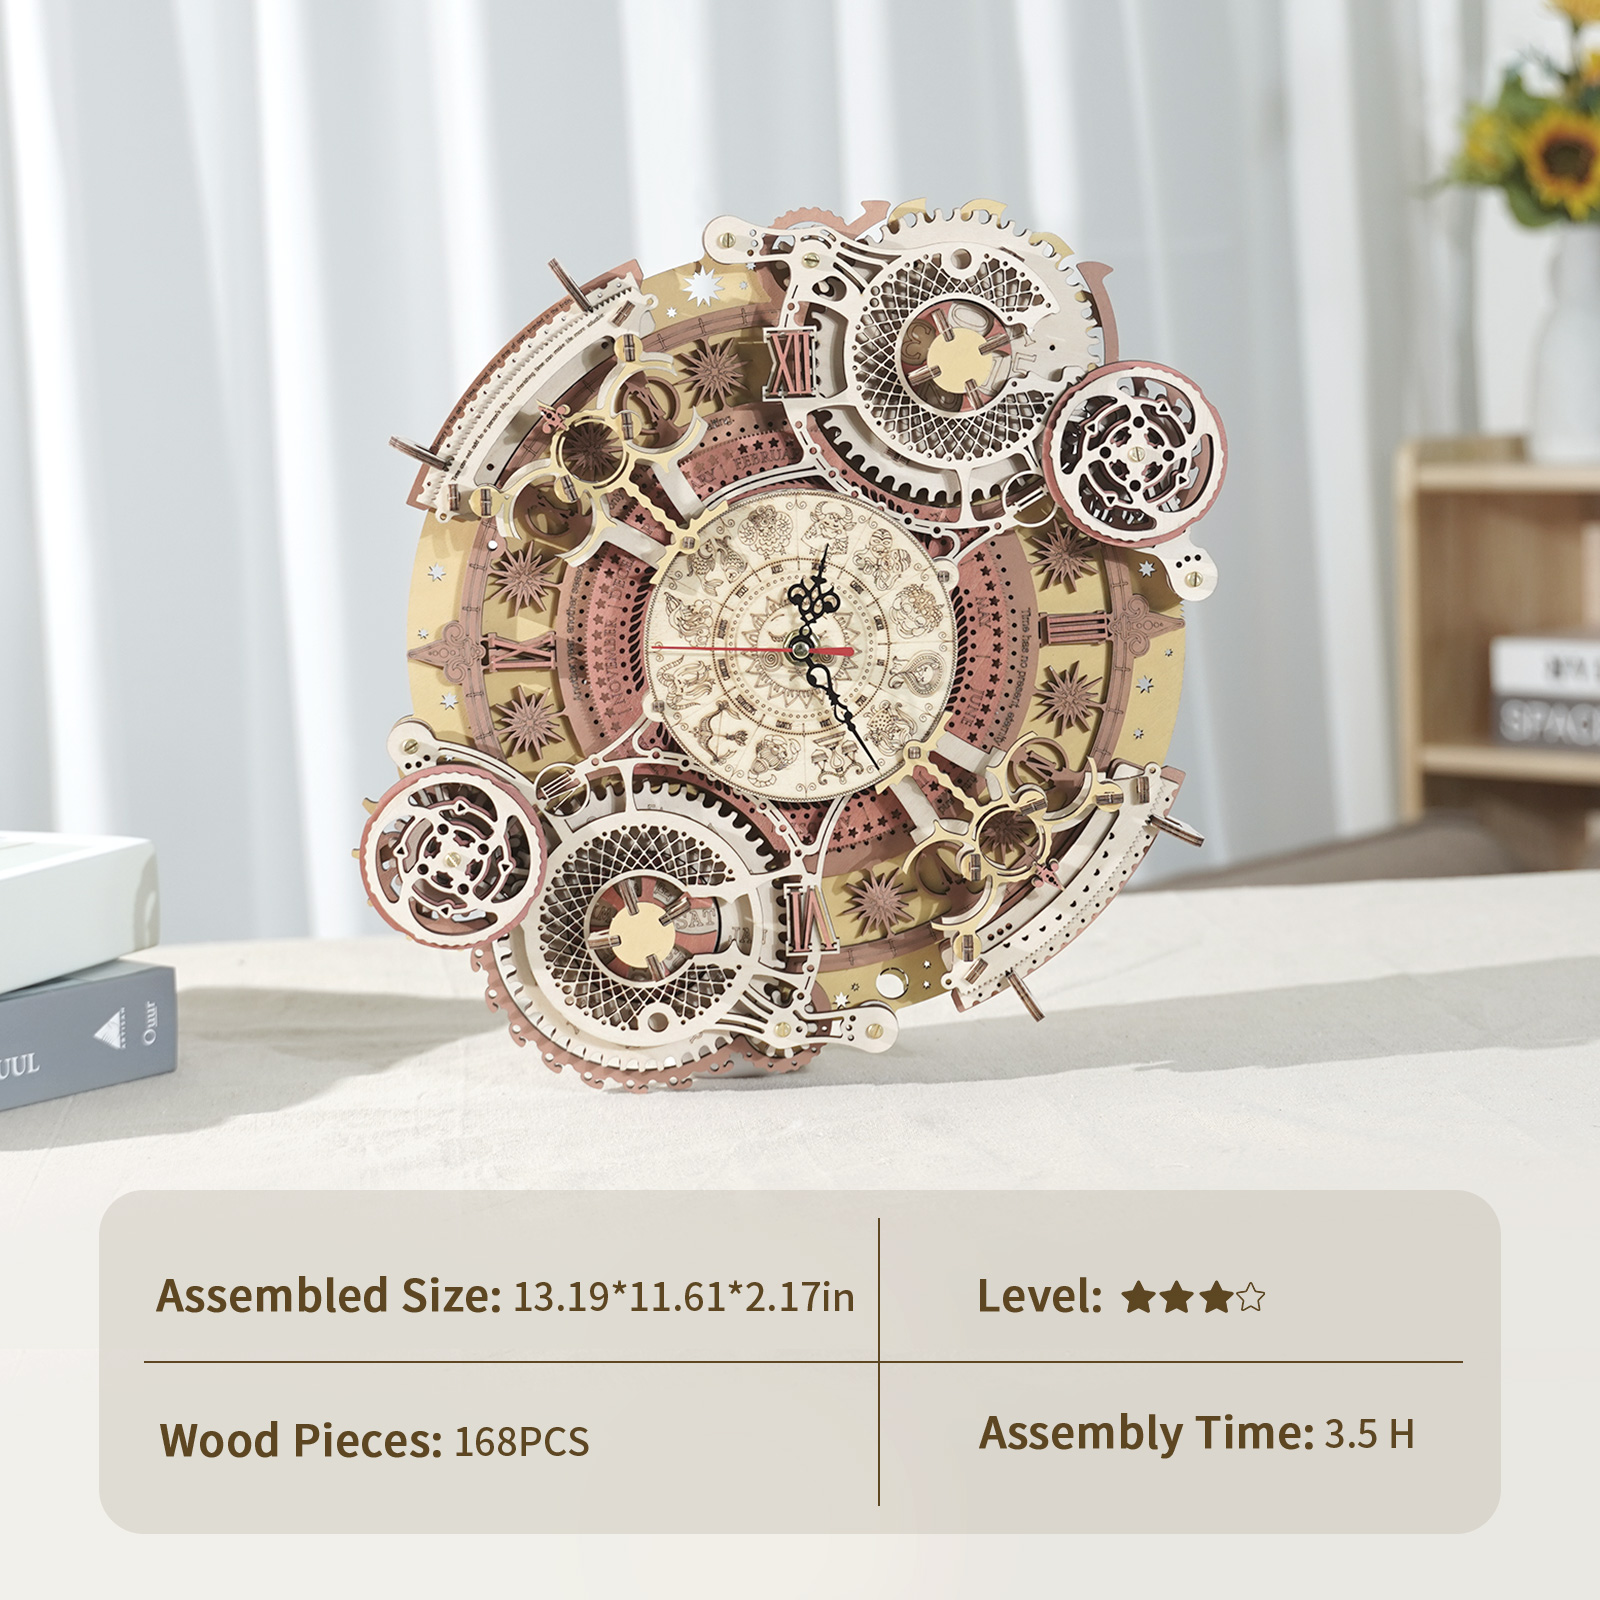 Robotime ROKR Zodiac Wall Clock 3d Wooden Puzzle Model Toys for Children Kids LC601 3